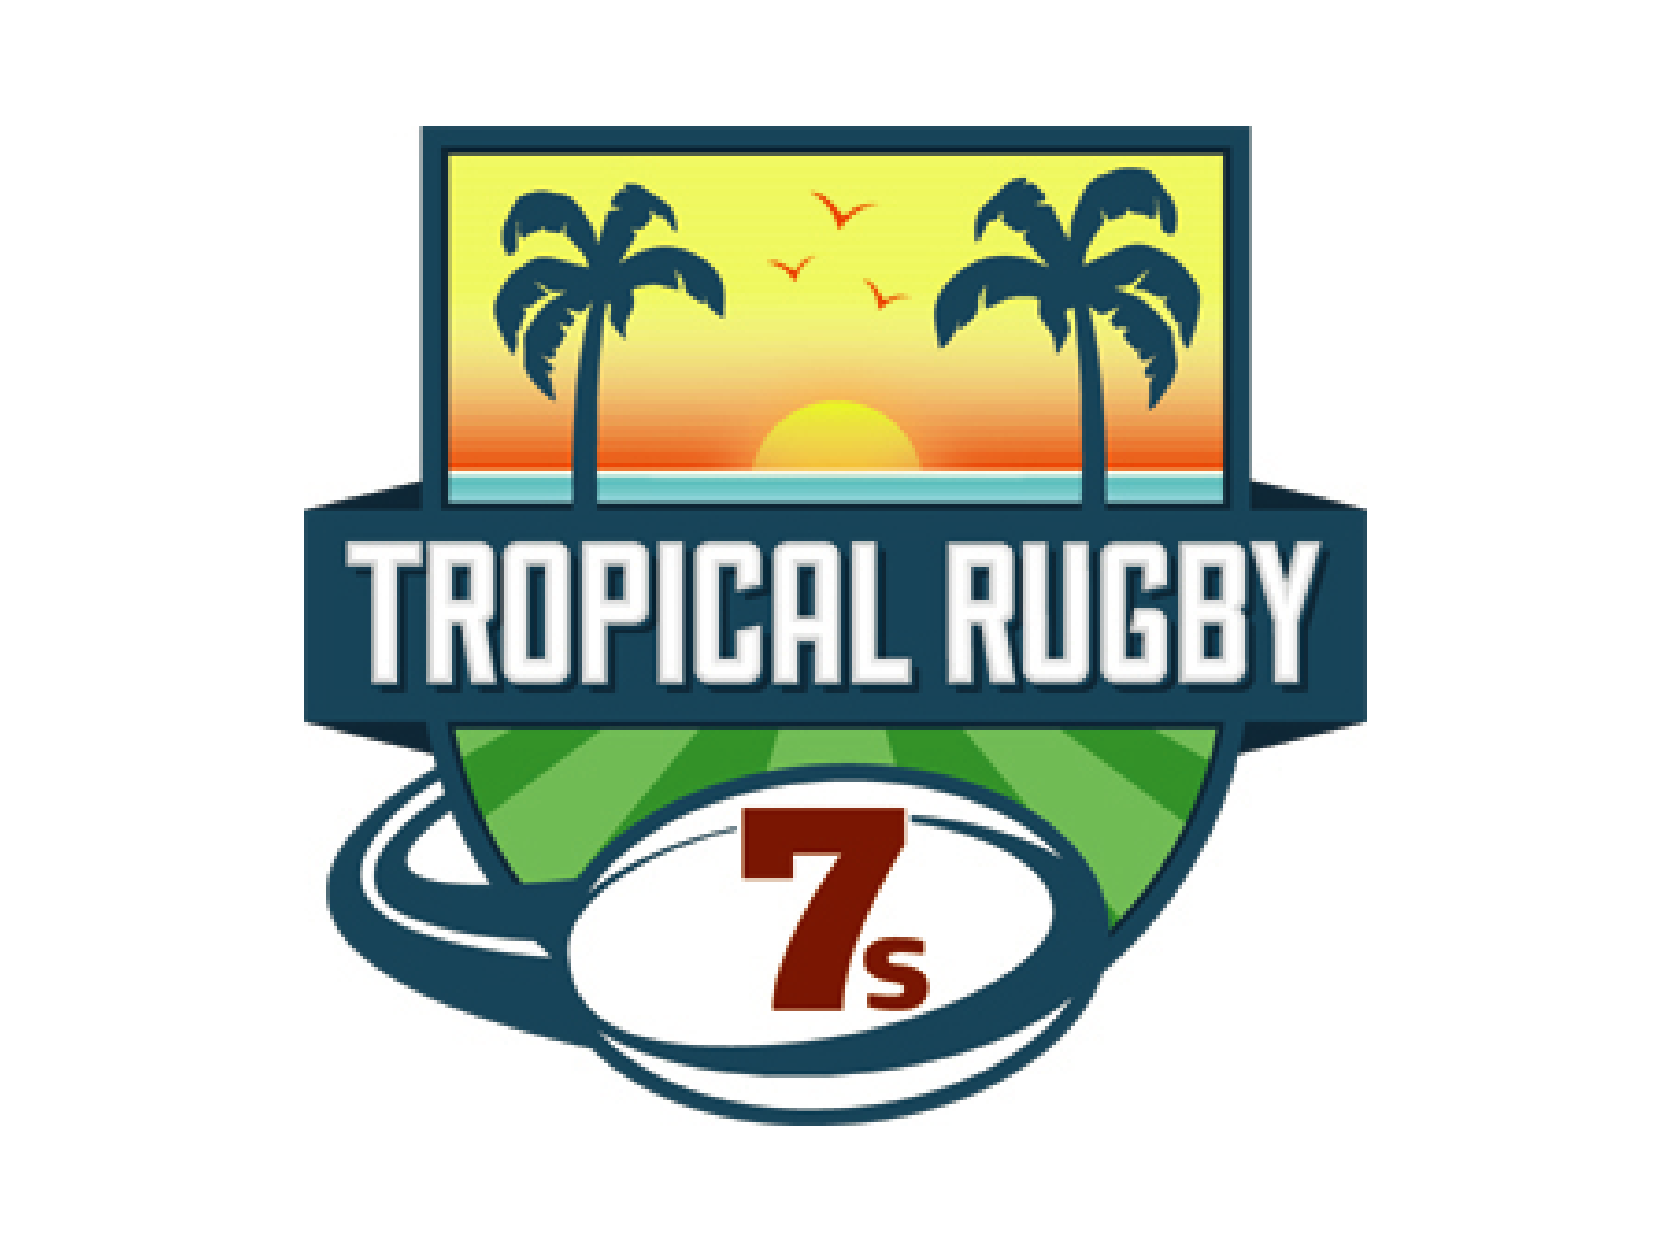 Tropical Rugby 7's